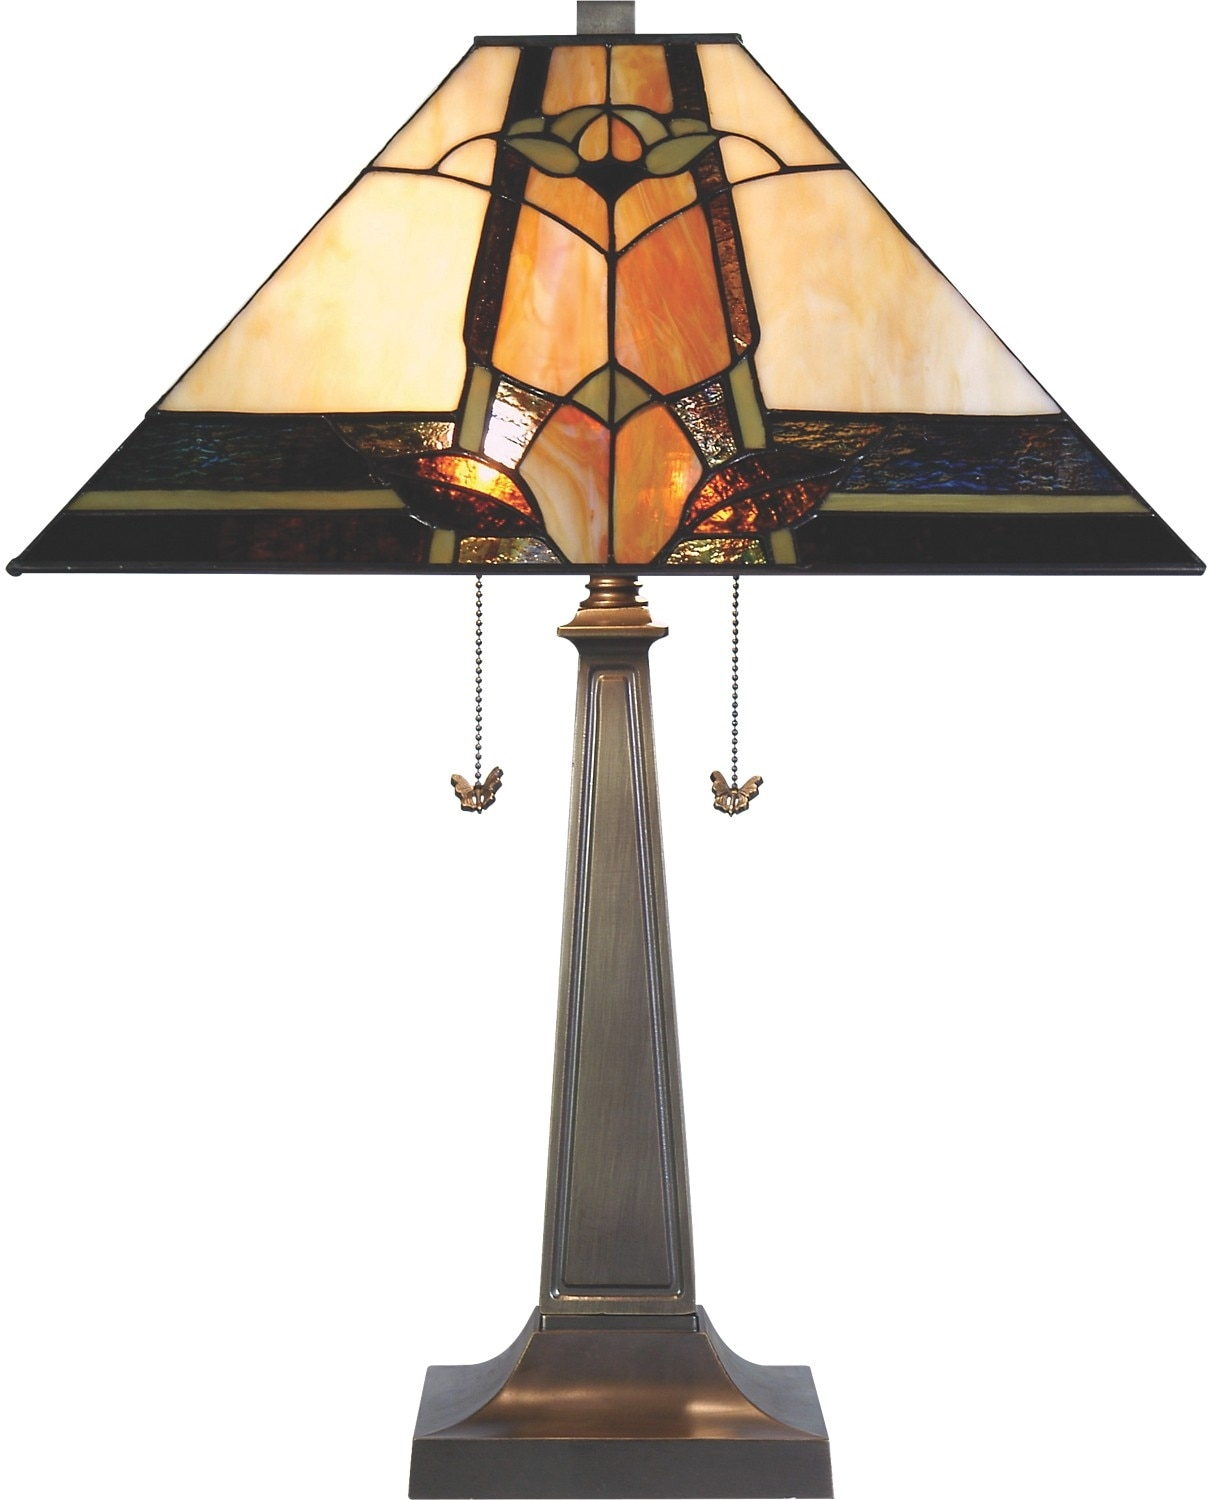 Marlow Table Lamp with Stained Glass Shade